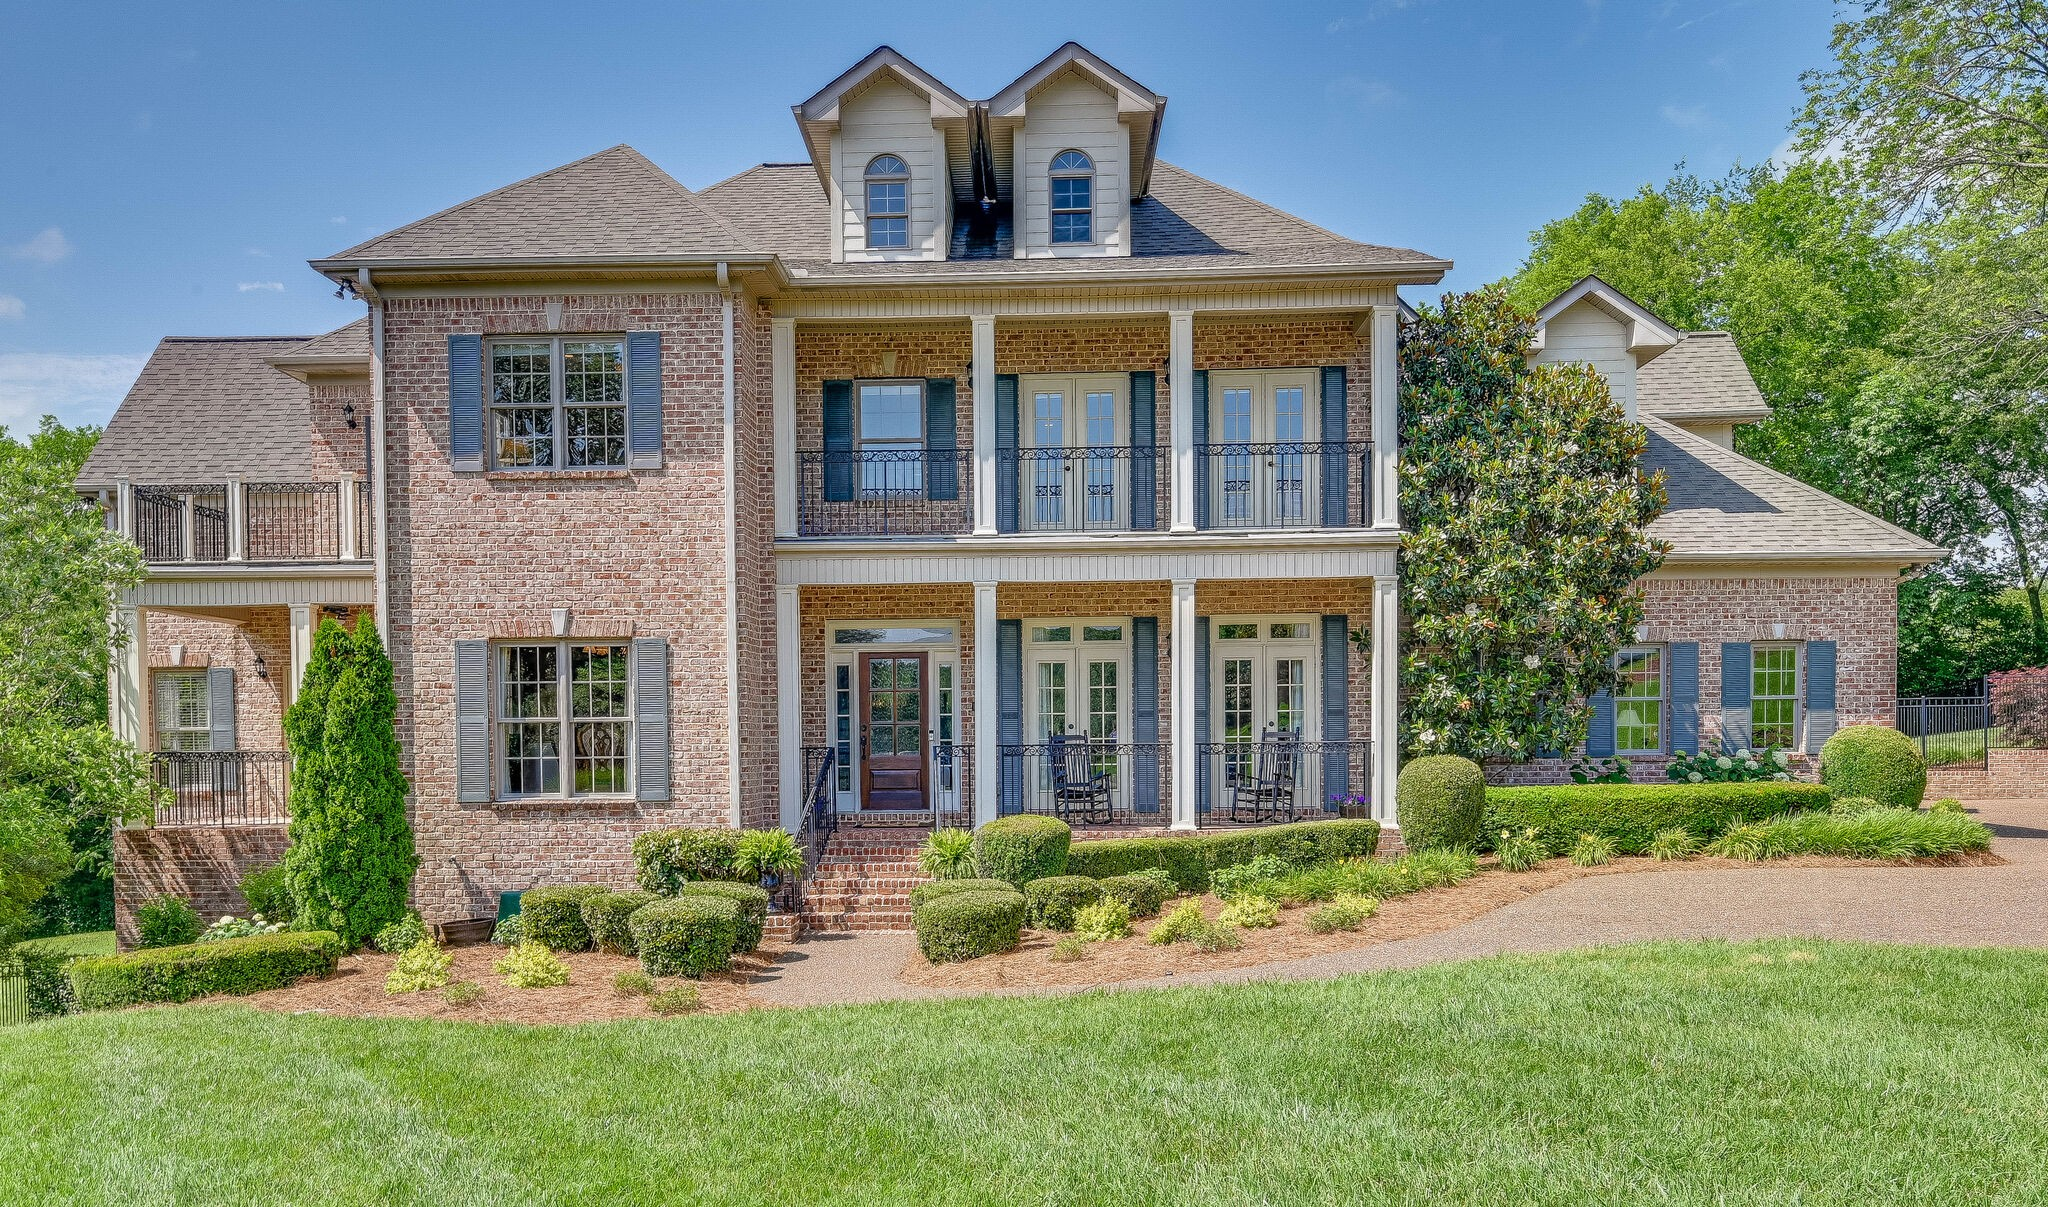 8224 W Chase Ct Property Photo - Nashville, TN real estate listing